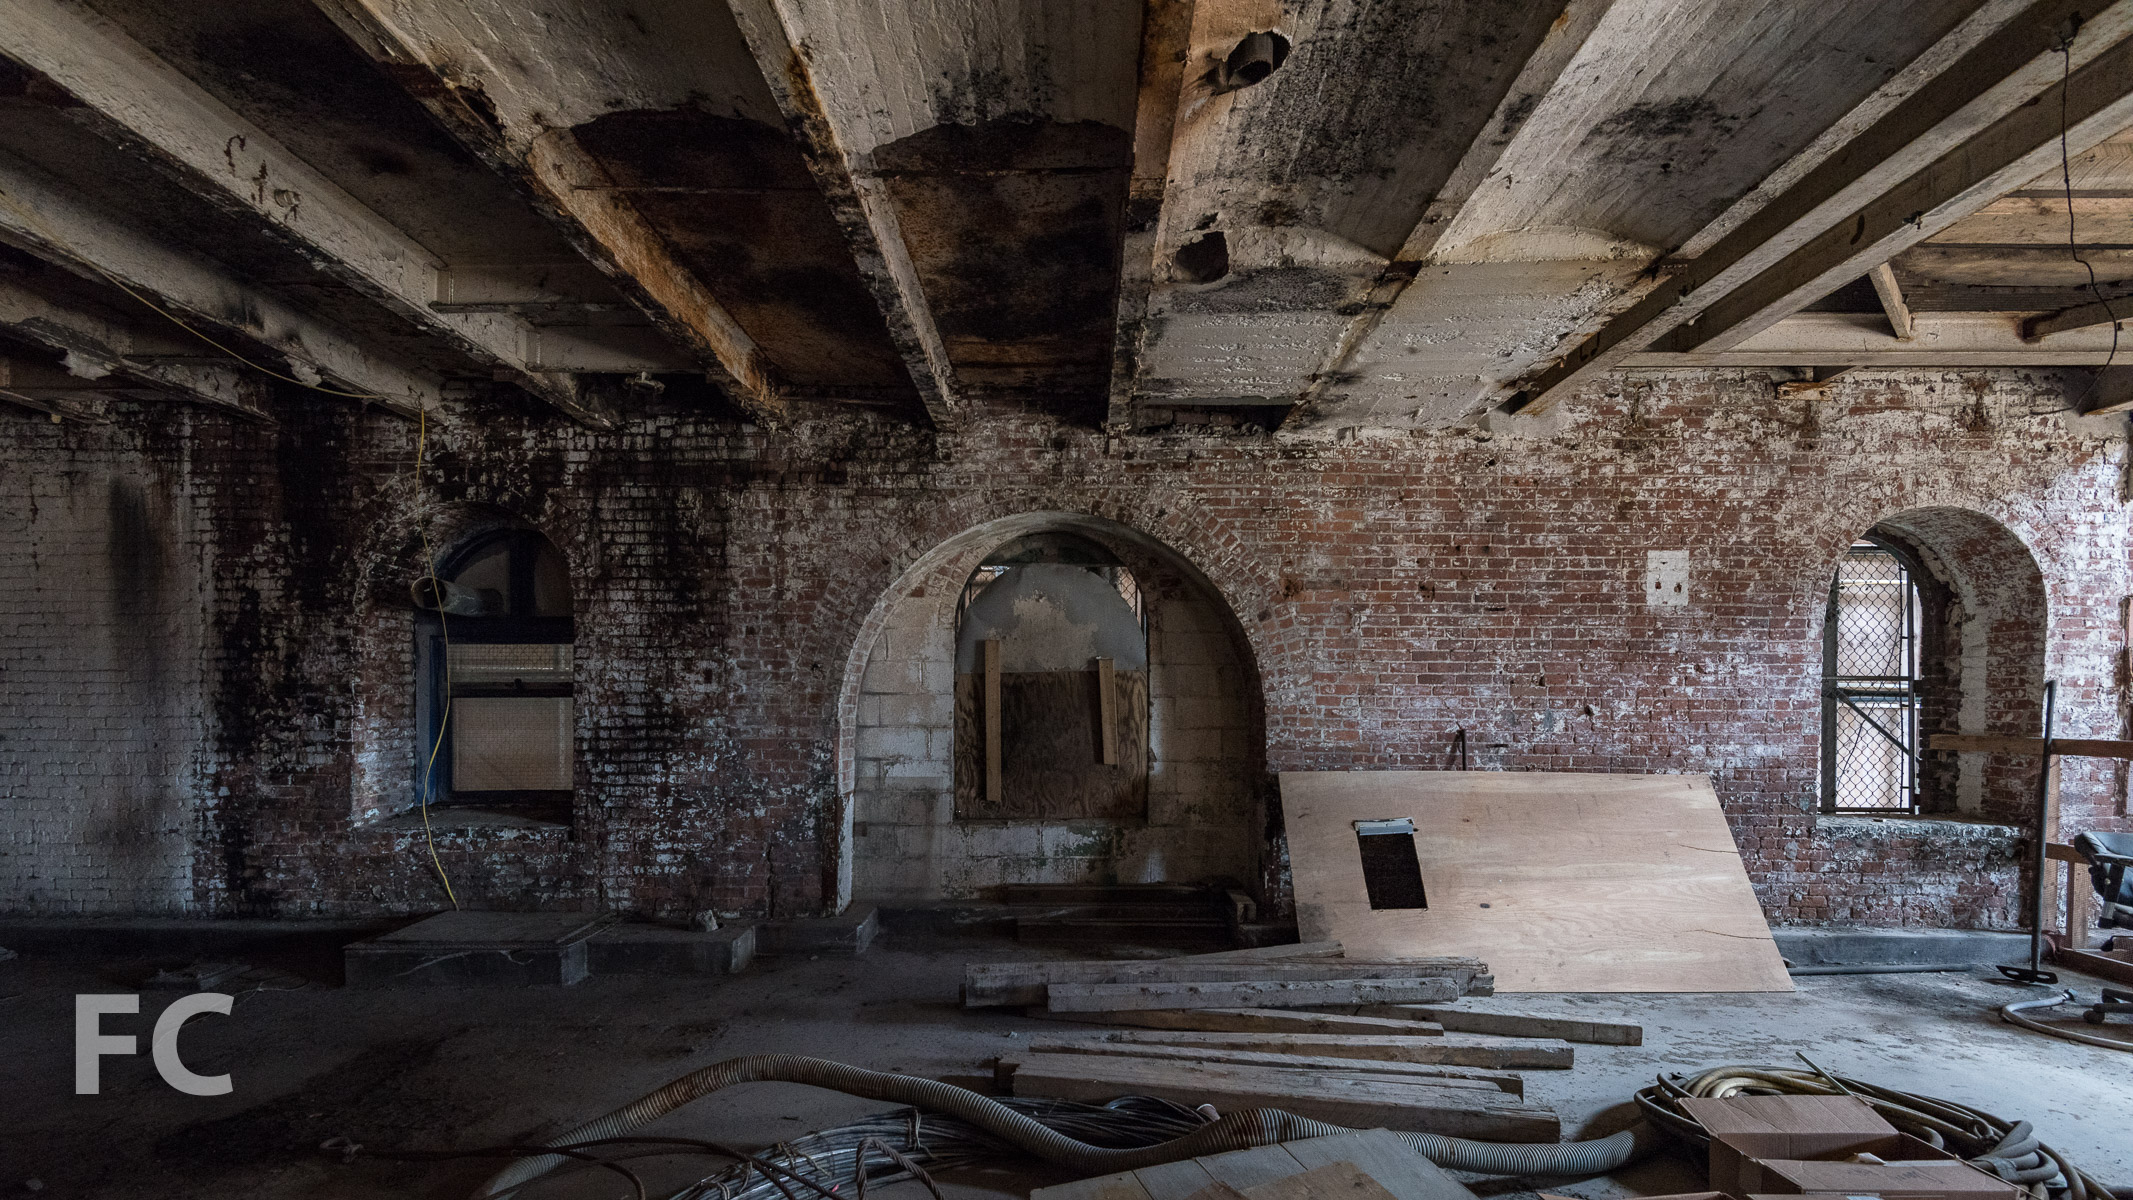 Inside the refinery building before renovation begins.